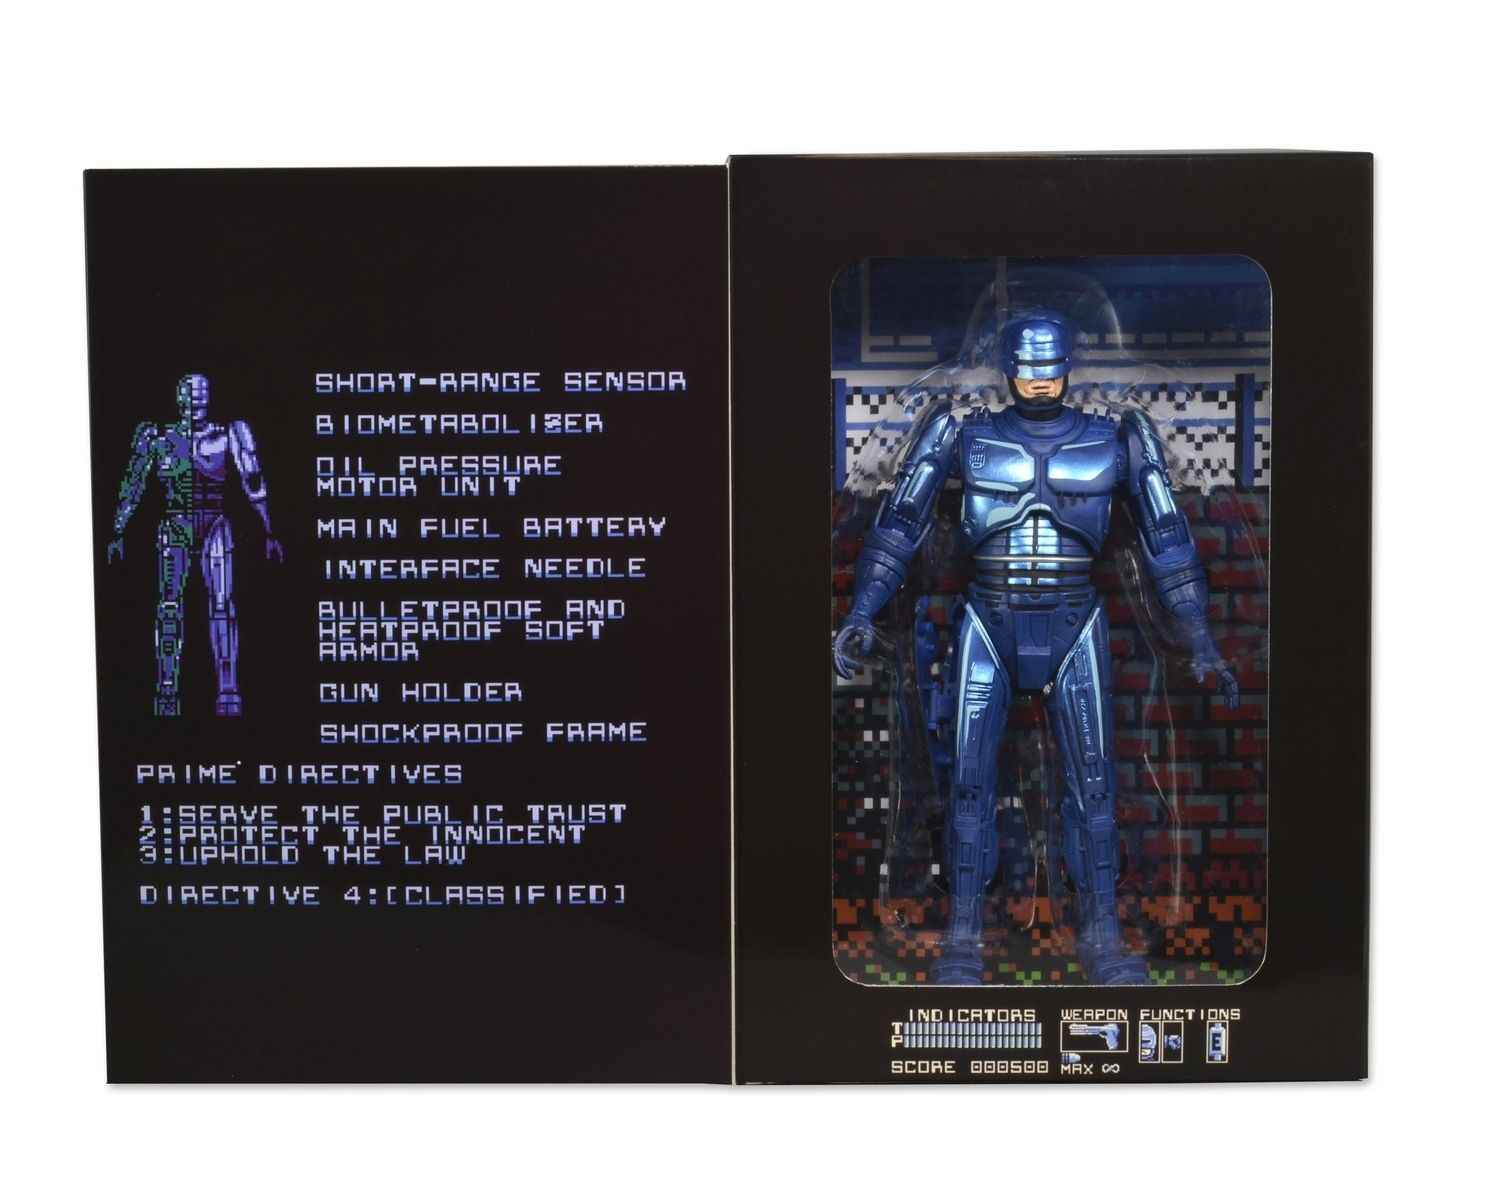 "NECA Robocop Clássico 1987 Video Game Aparência PVC Action Figure Collectible Modelo Toy 7 ""18 cm KT3129"